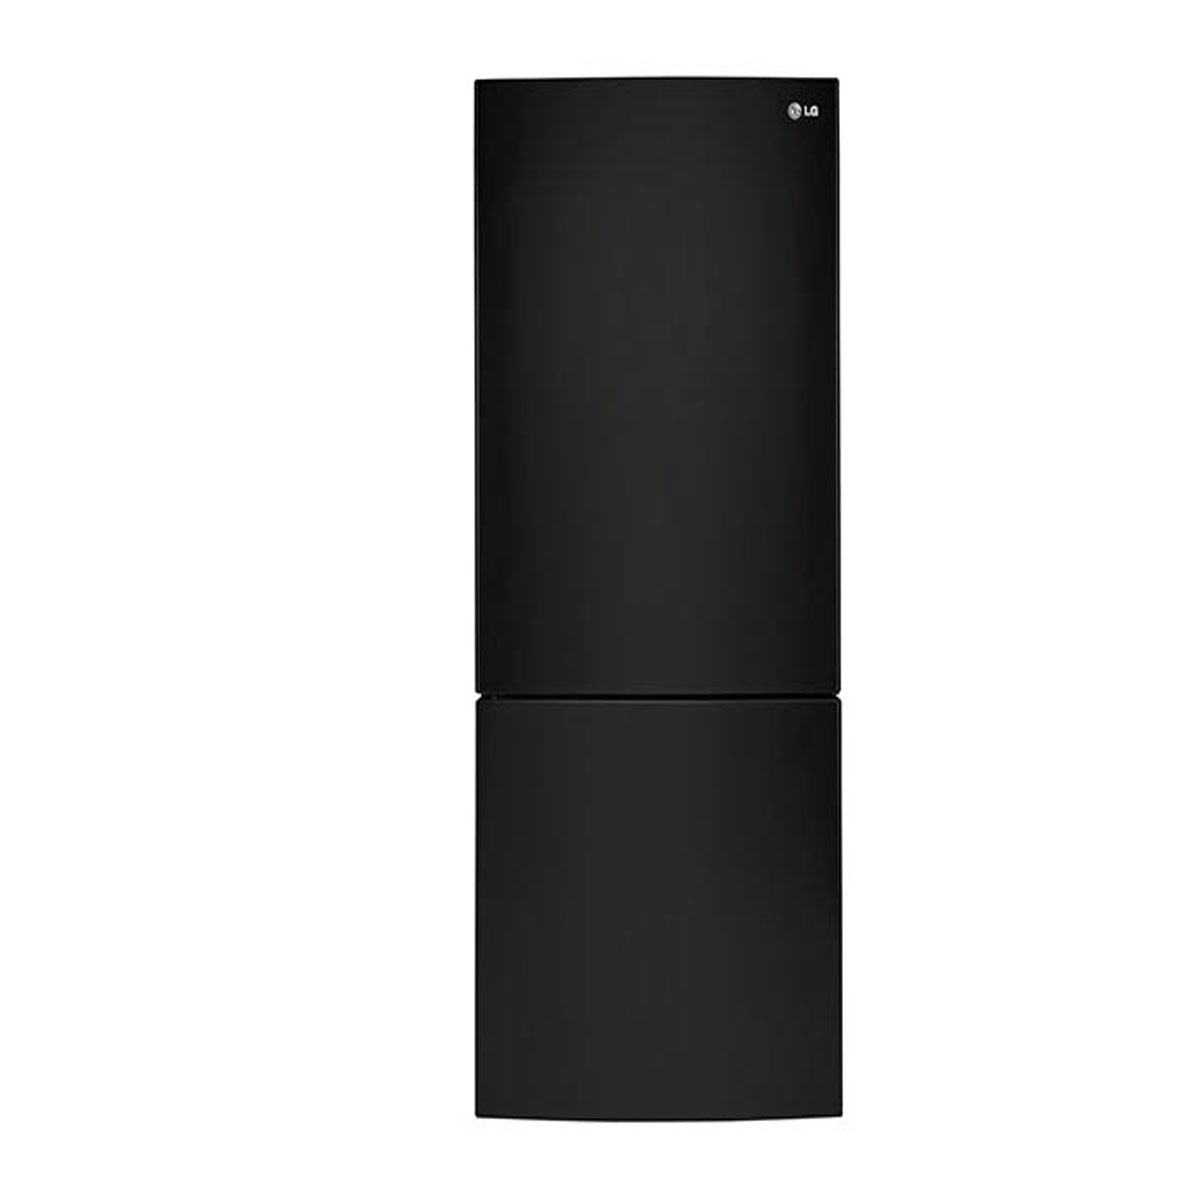 LG GB-450UBLX 450L Bottom Mount Fridge